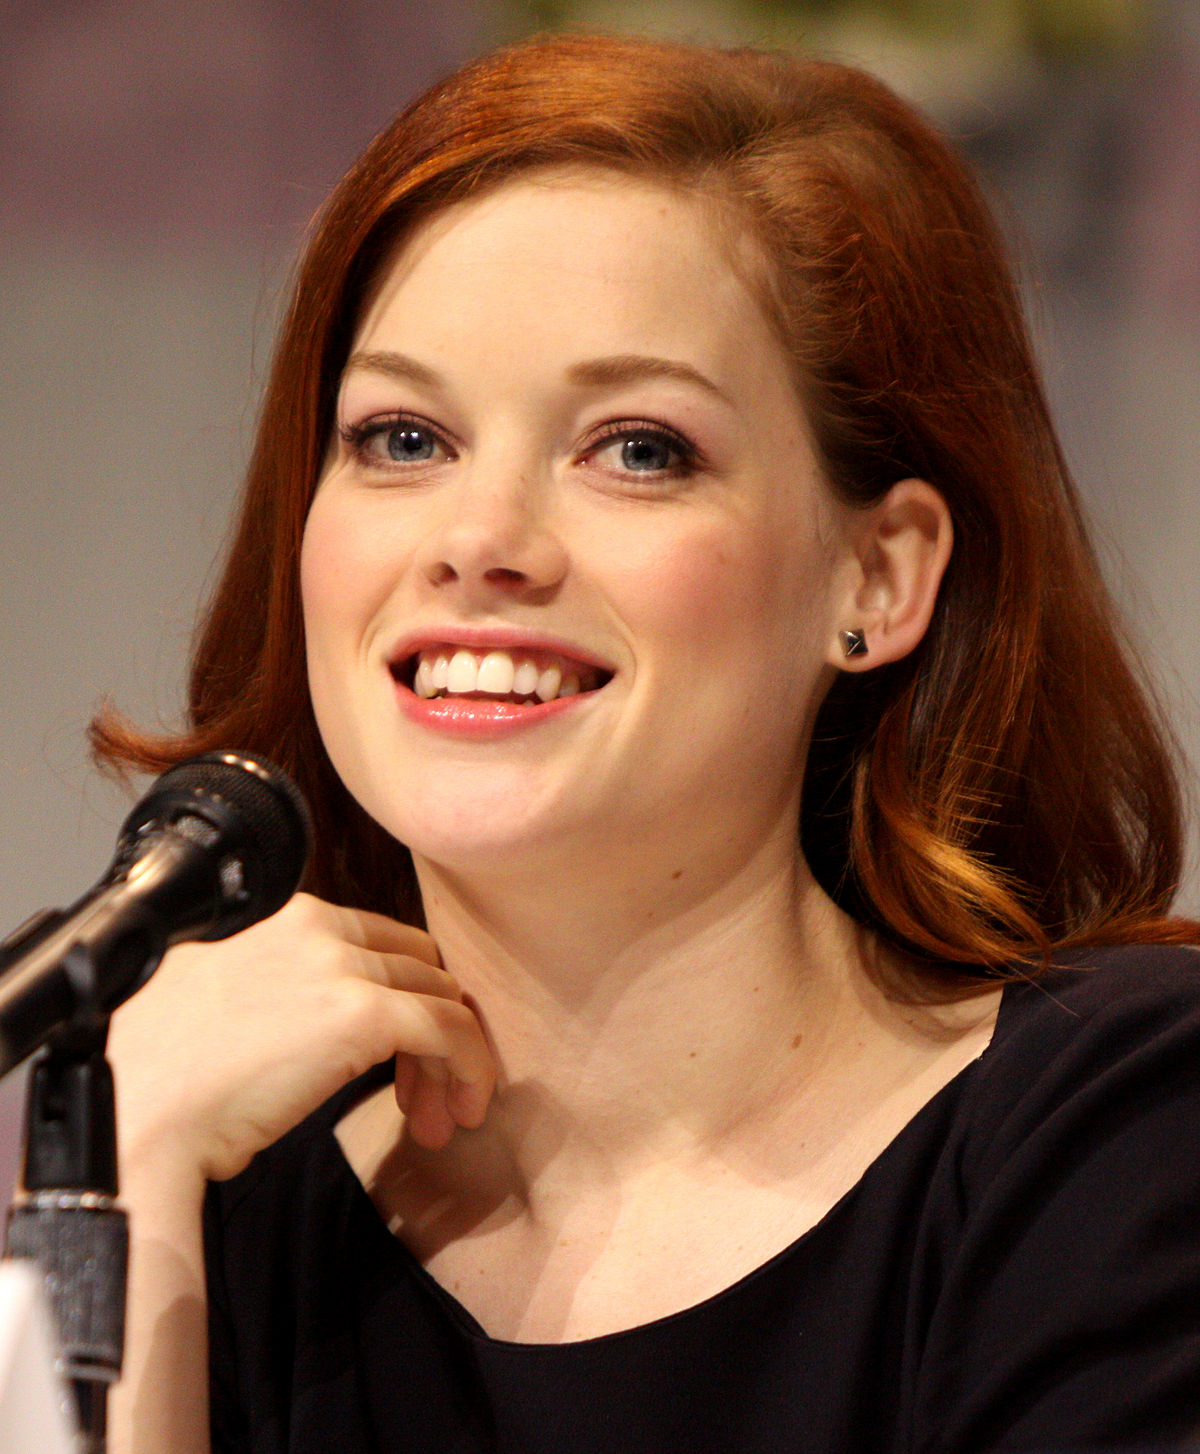 Images Jane Levy nude photos 2019